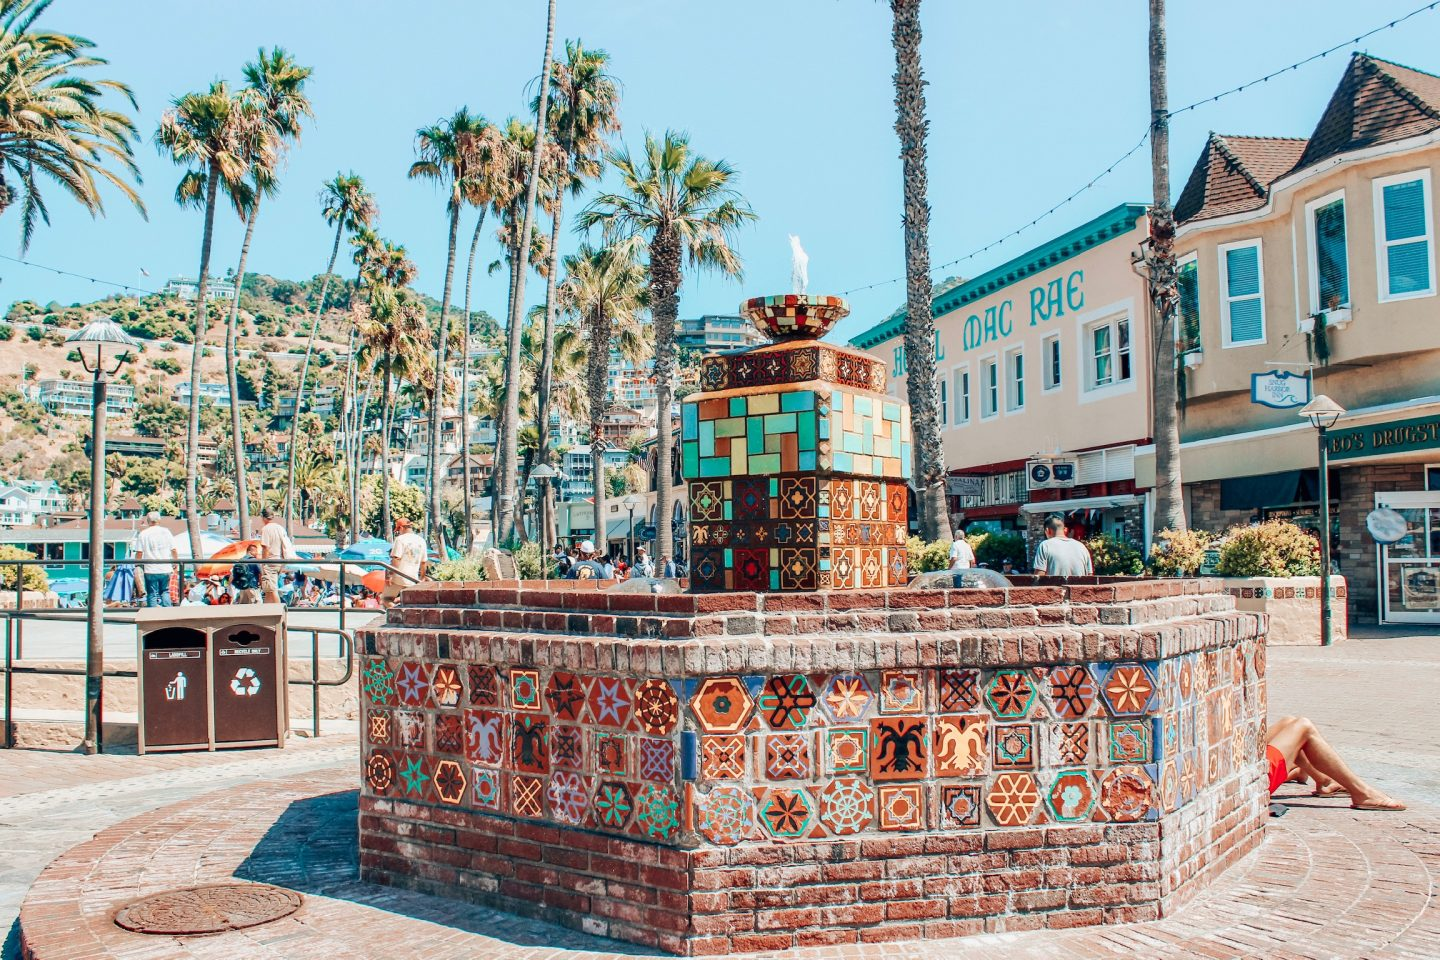 Catalina Island's downtown and famous tile fountain